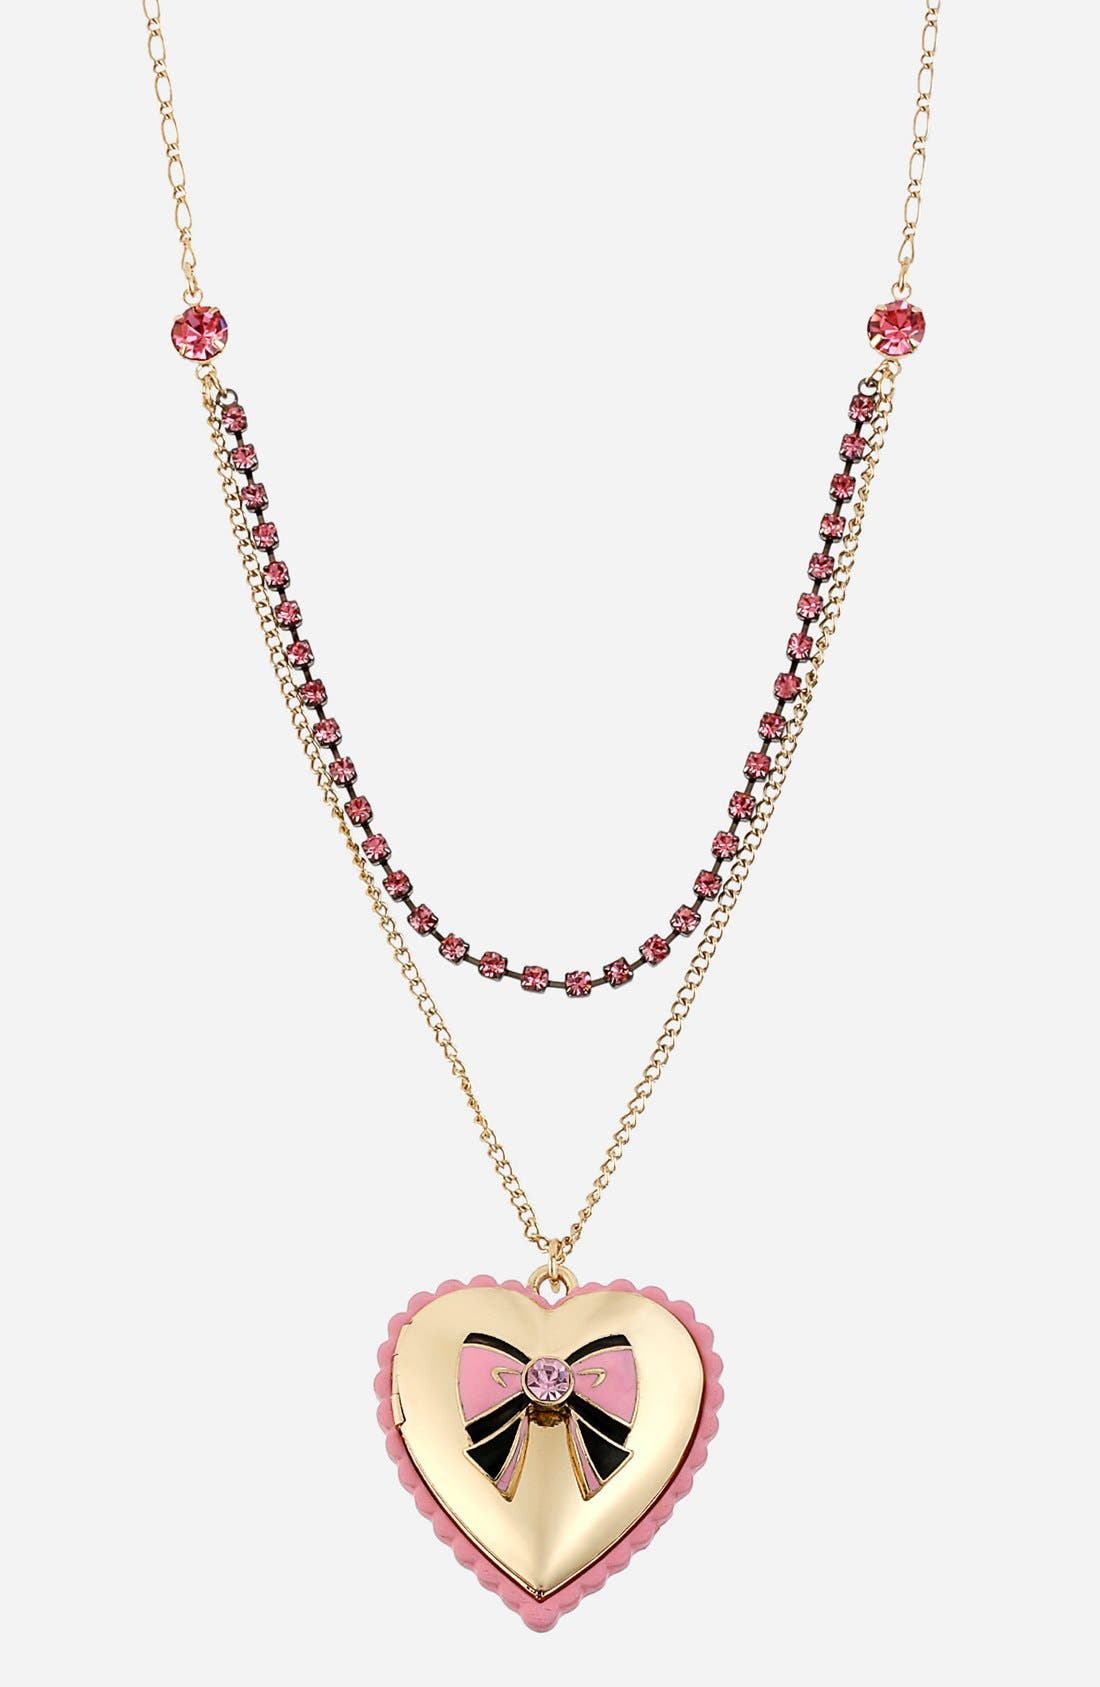 Alternate Image 1 Selected - Betsey Johnson 'Paris' Heart & Bow Pendant Necklace